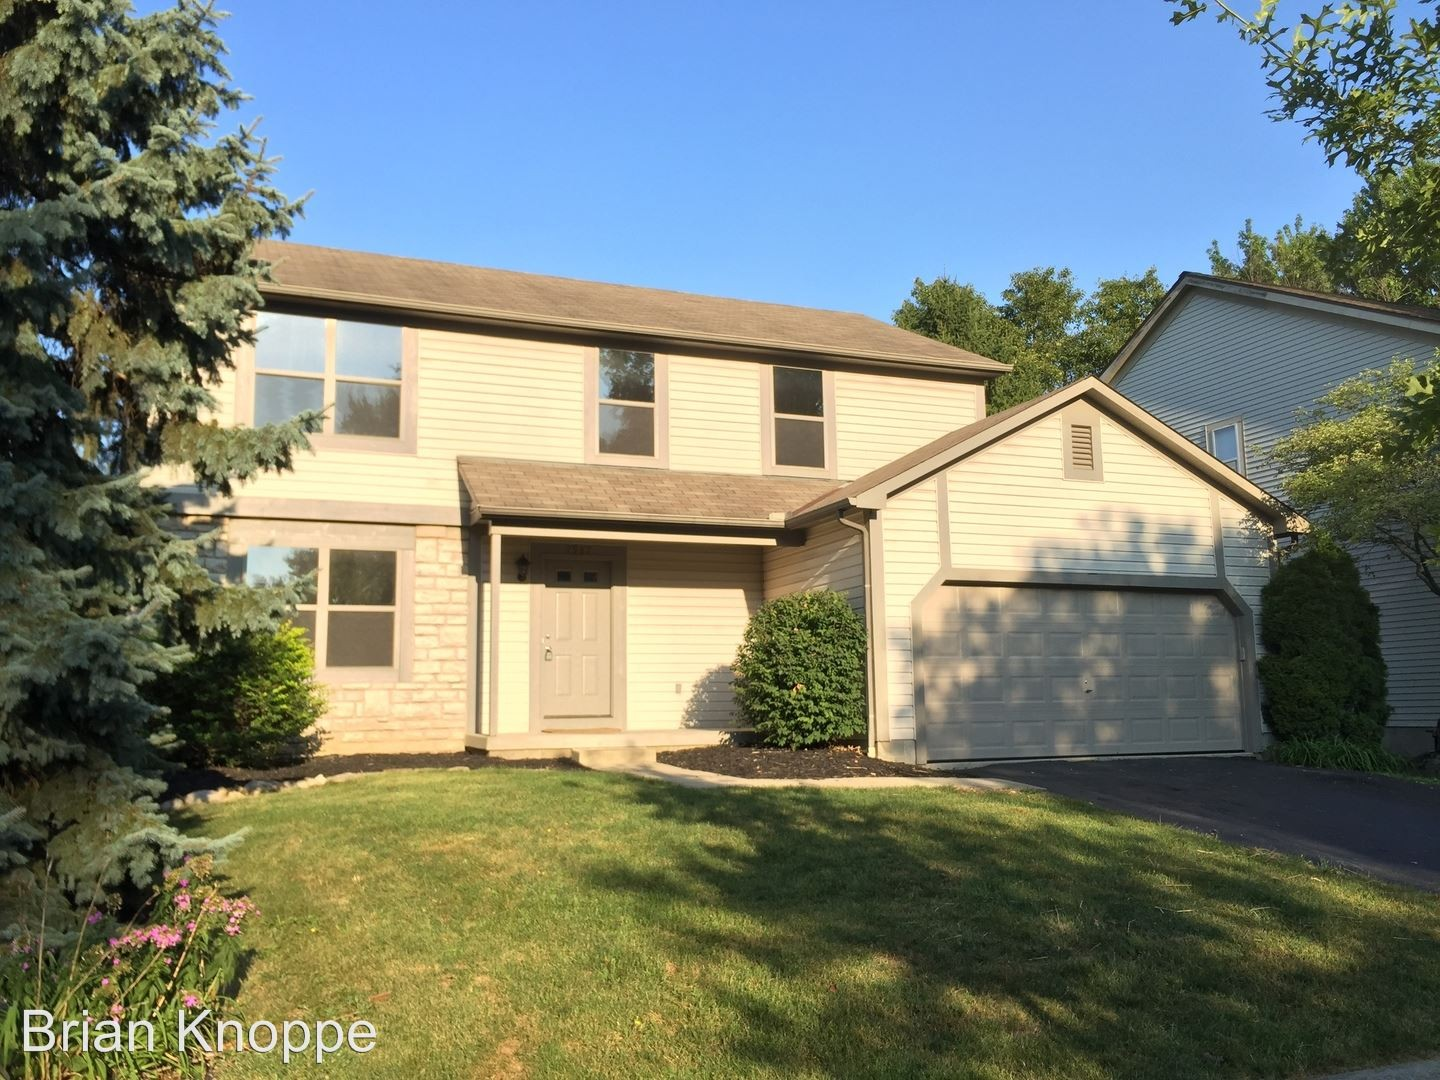 7987 storrow dr westerville oh 43081 4 bedroom apartment for rent padmapper for 2 bedroom apartments westerville ohio